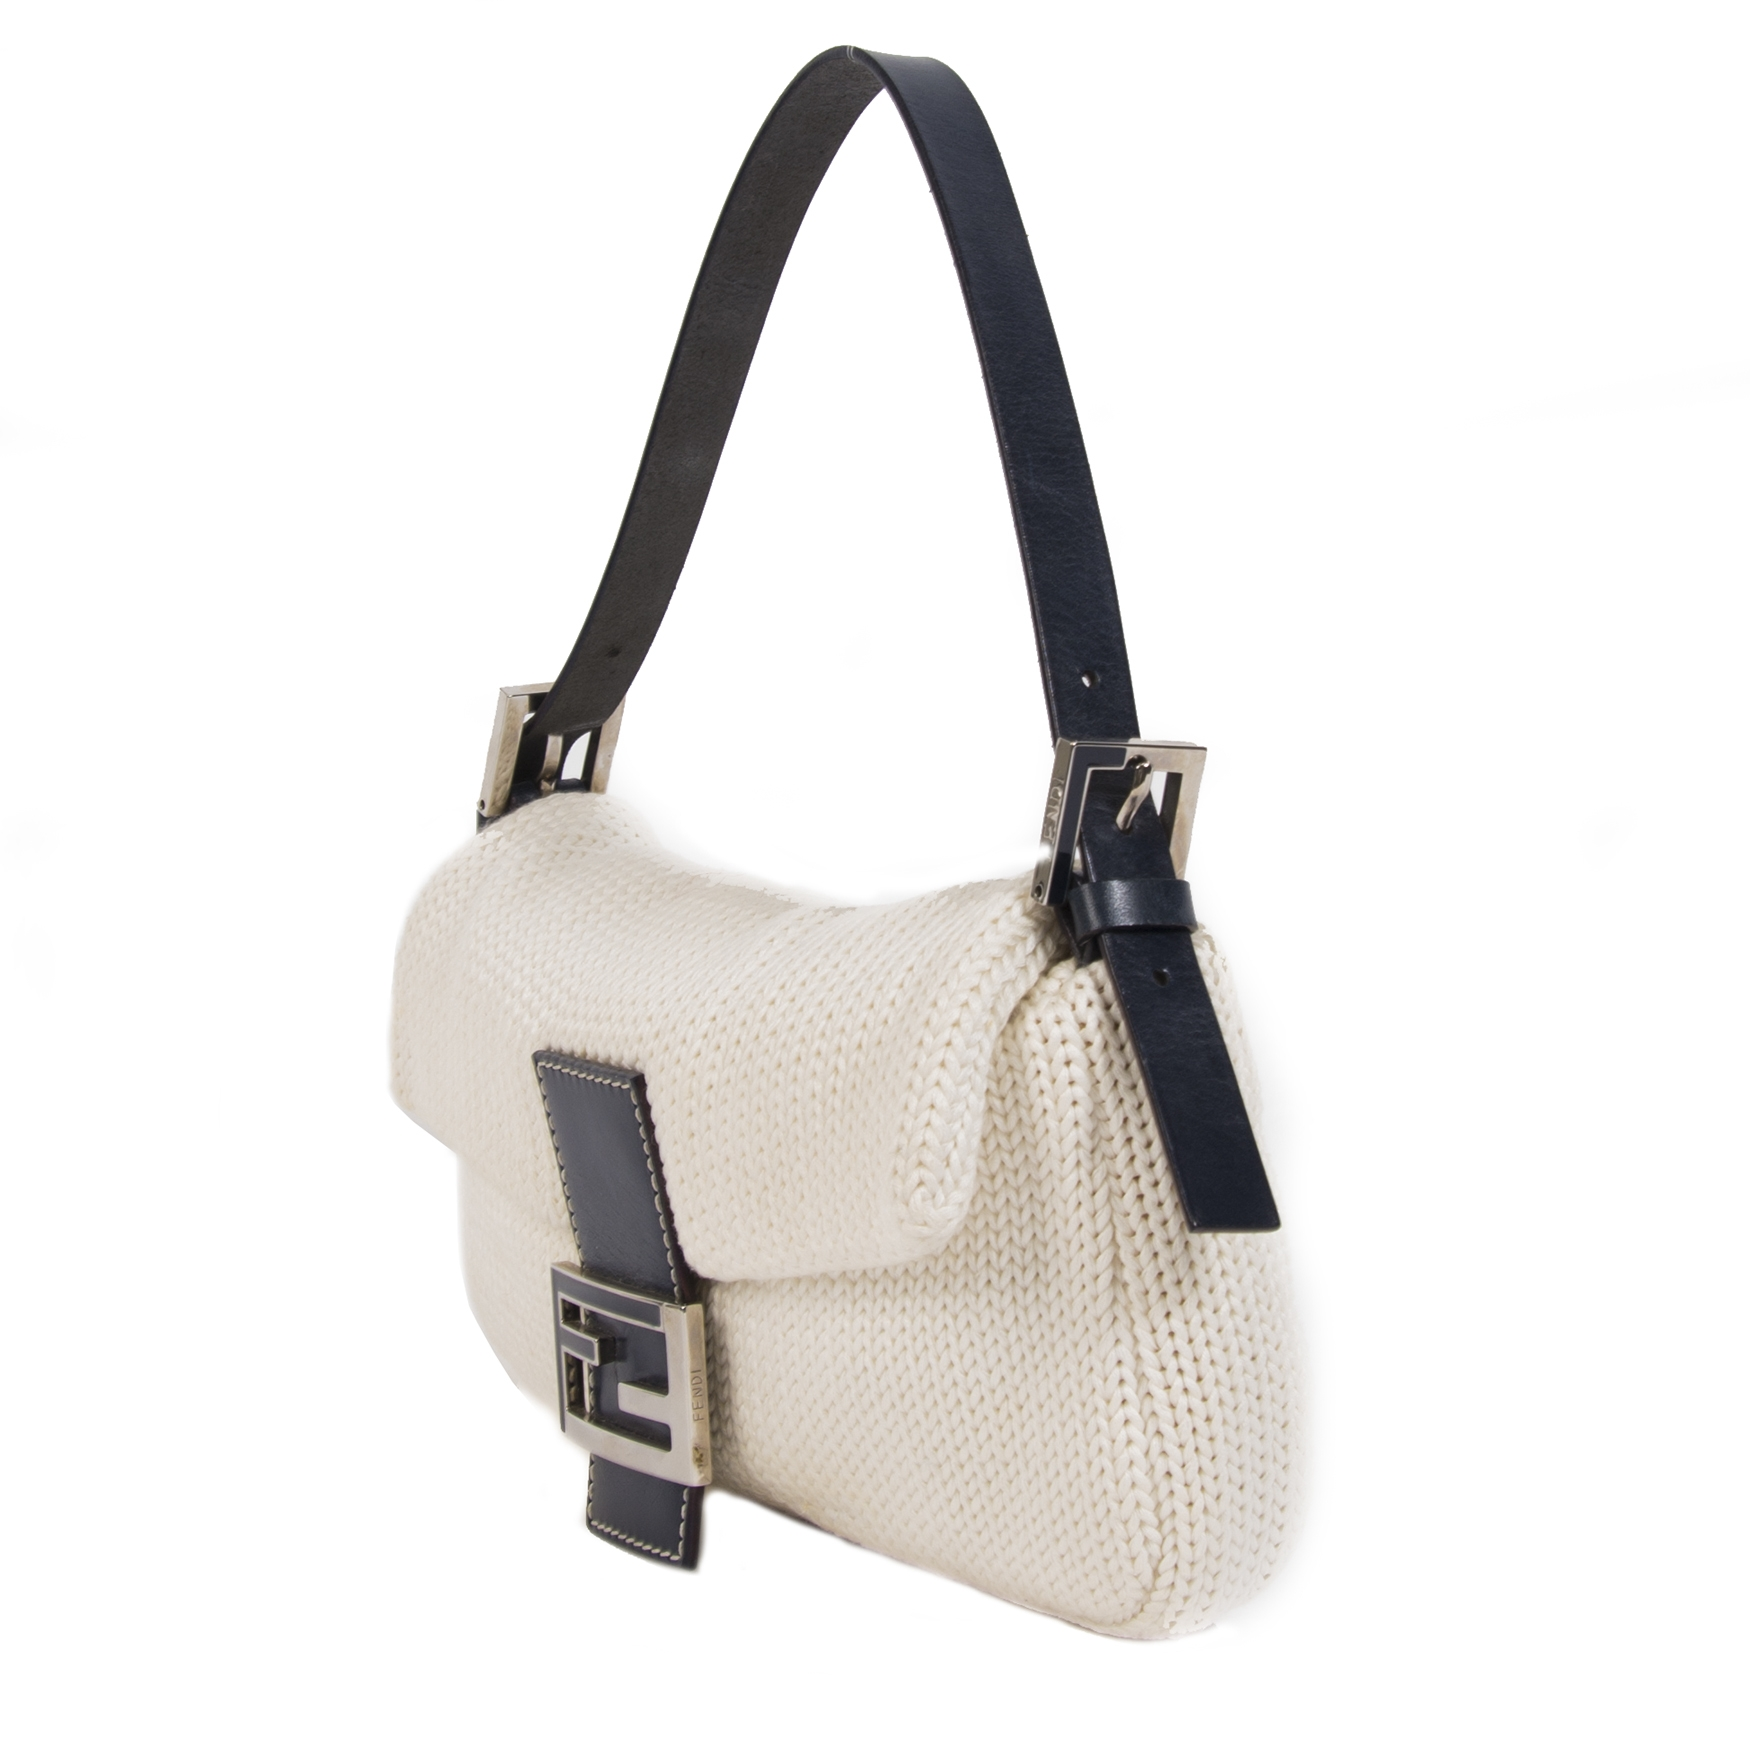 We buy and sell your authentic Fendi Ivory Knitted Baguette Bag